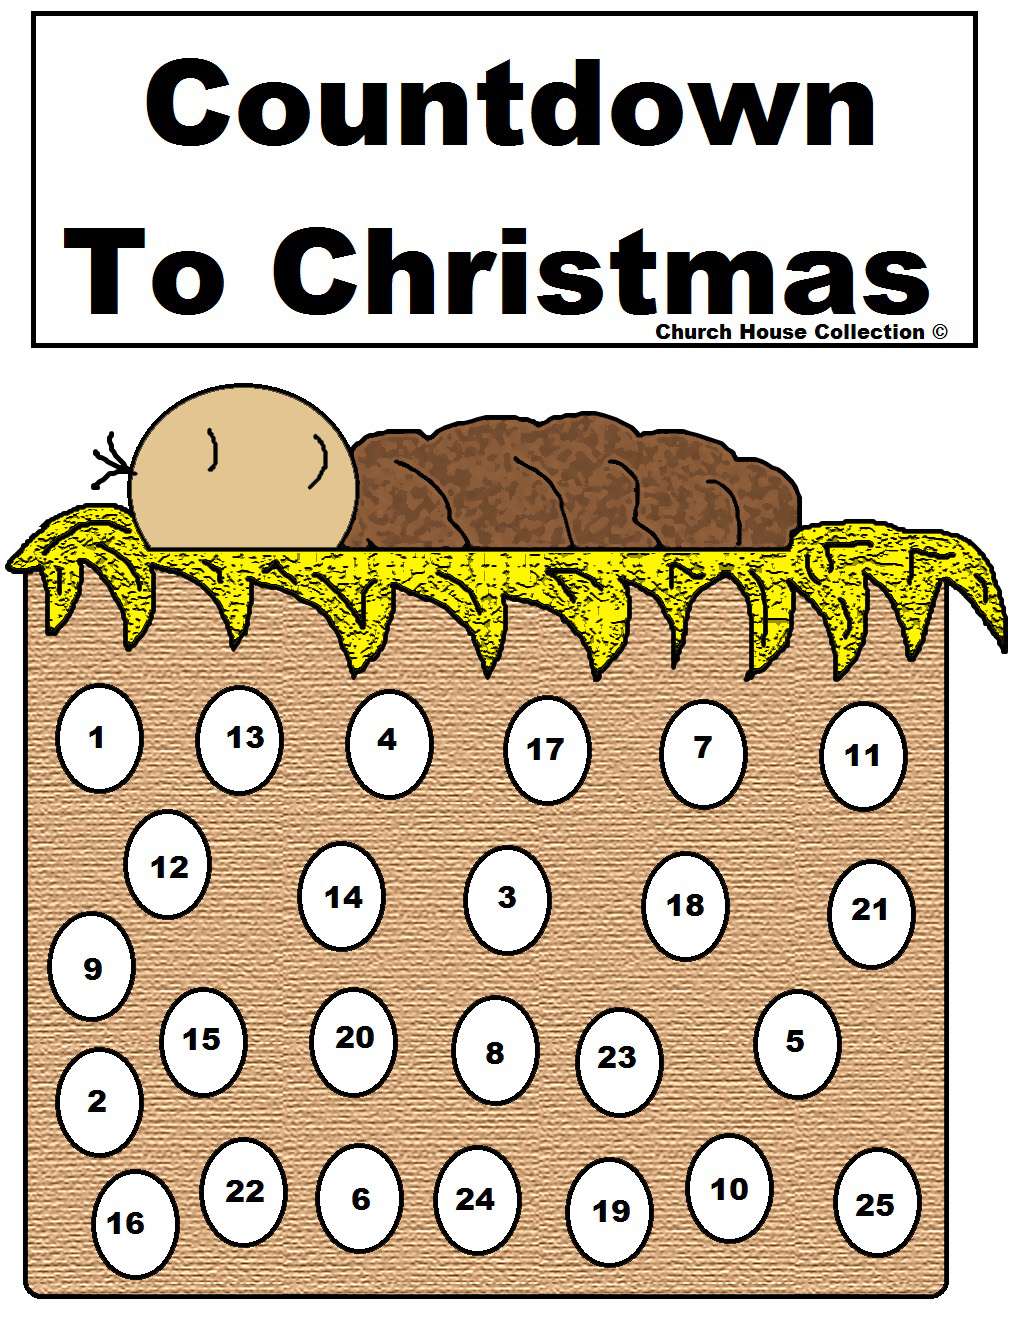 Church House Collection Blog Baby Jesus Advent Calendar